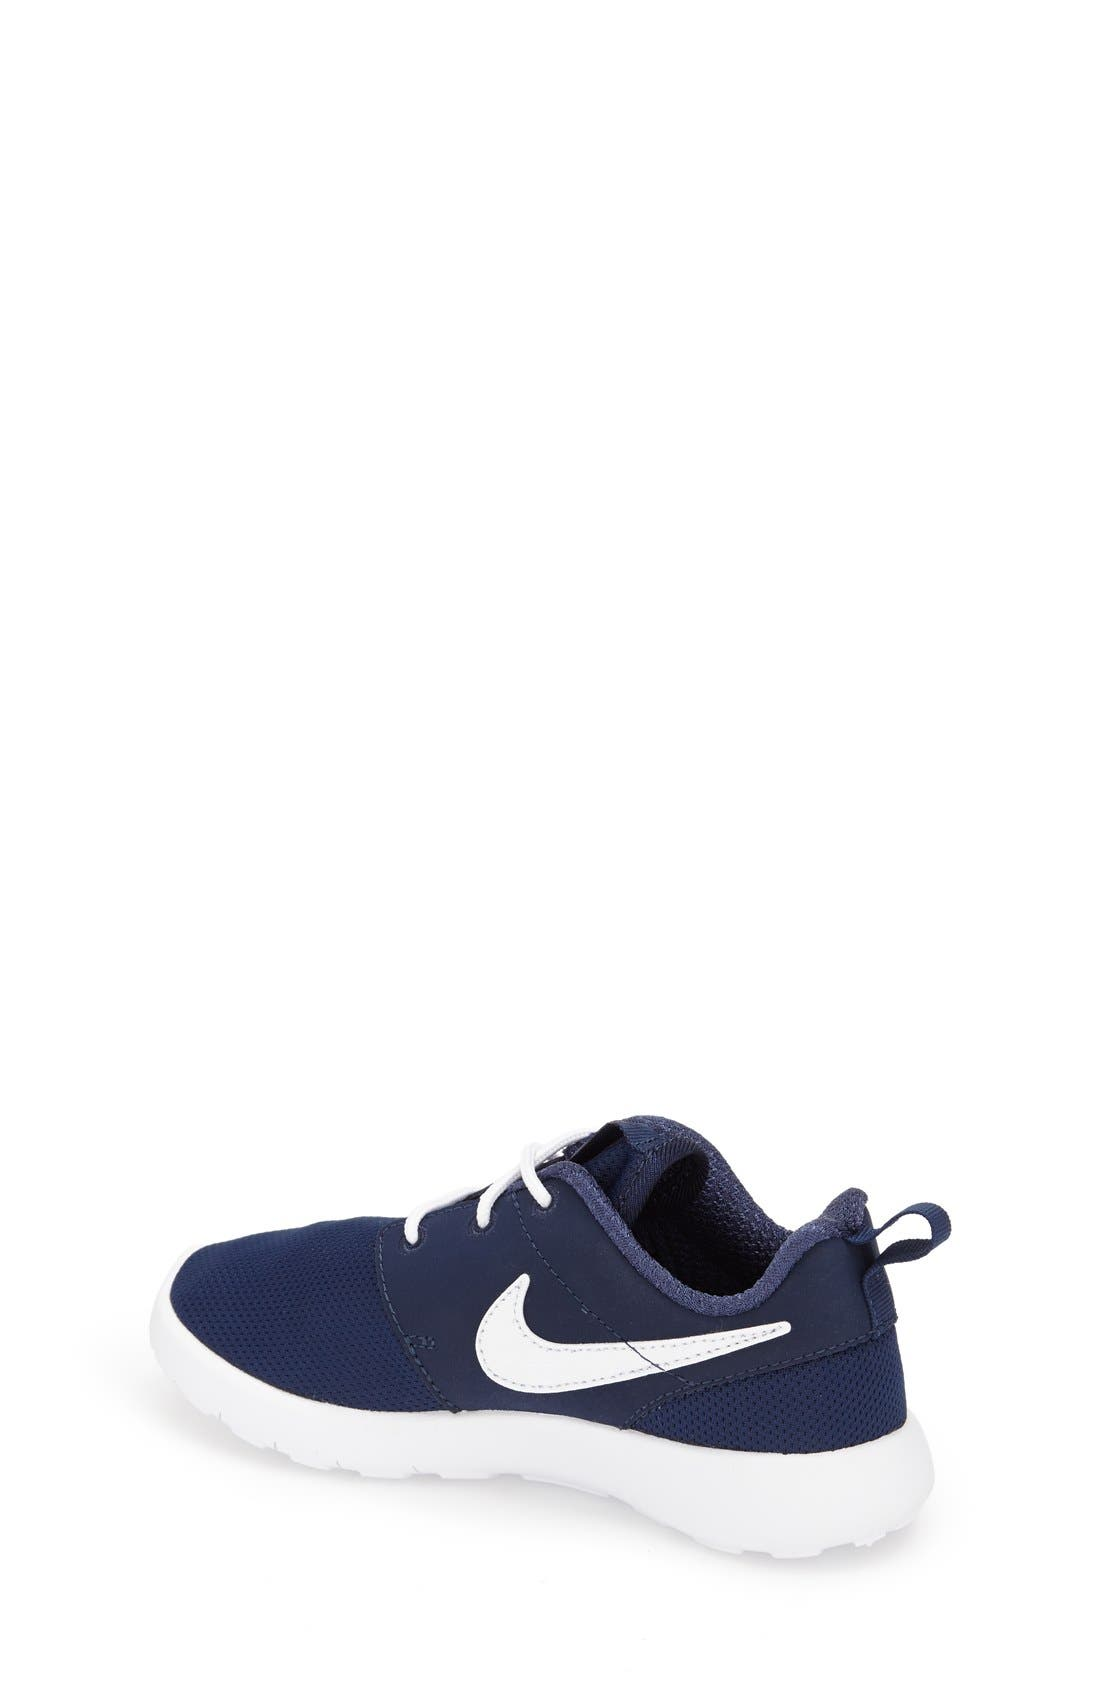 Roshe Run Sneaker,                             Alternate thumbnail 34, color,